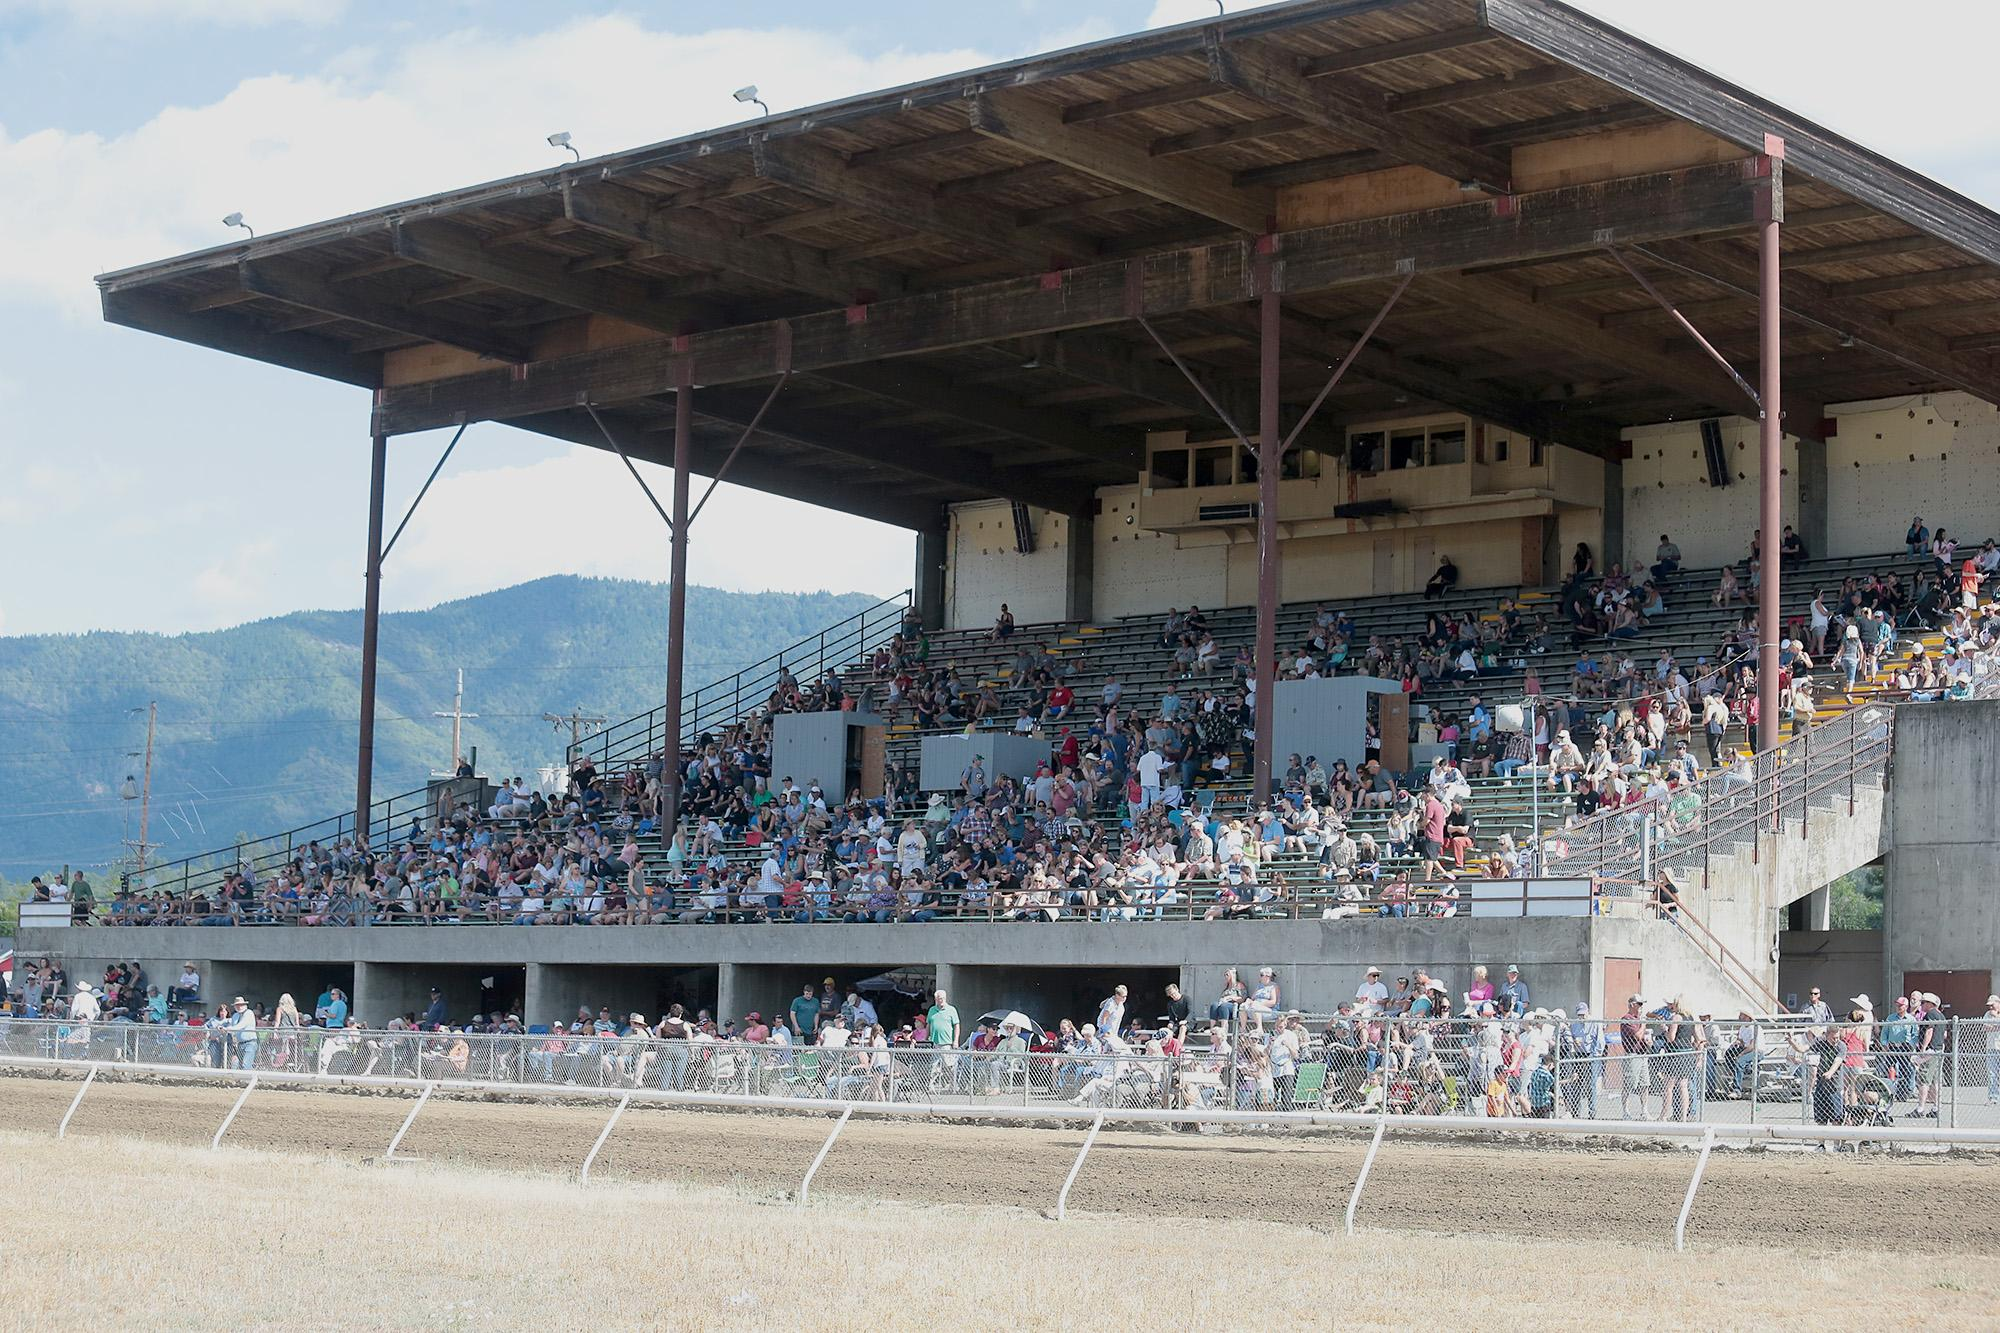 Horse Racing at Grants Pass Downs on Sunday, June 17, 2018.[PHOTO BY:  LARRY STAUTH JR]